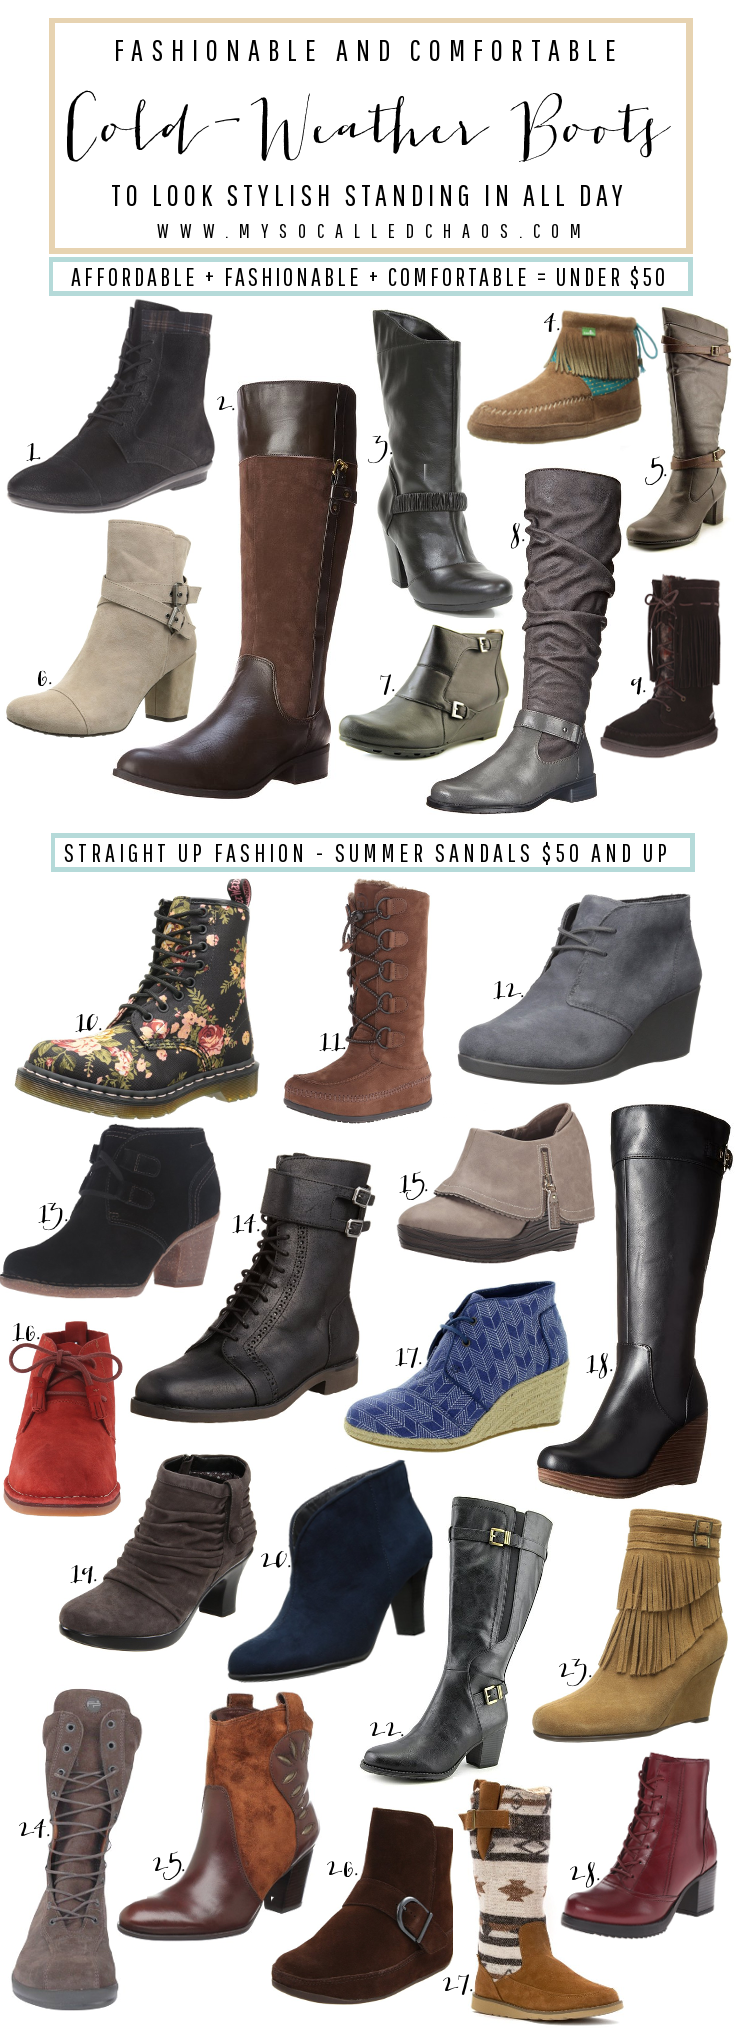 The Best Boots for Fashionable and Comfortable Shoes - If you have to stand all day for work, or walk a lot, check these out!